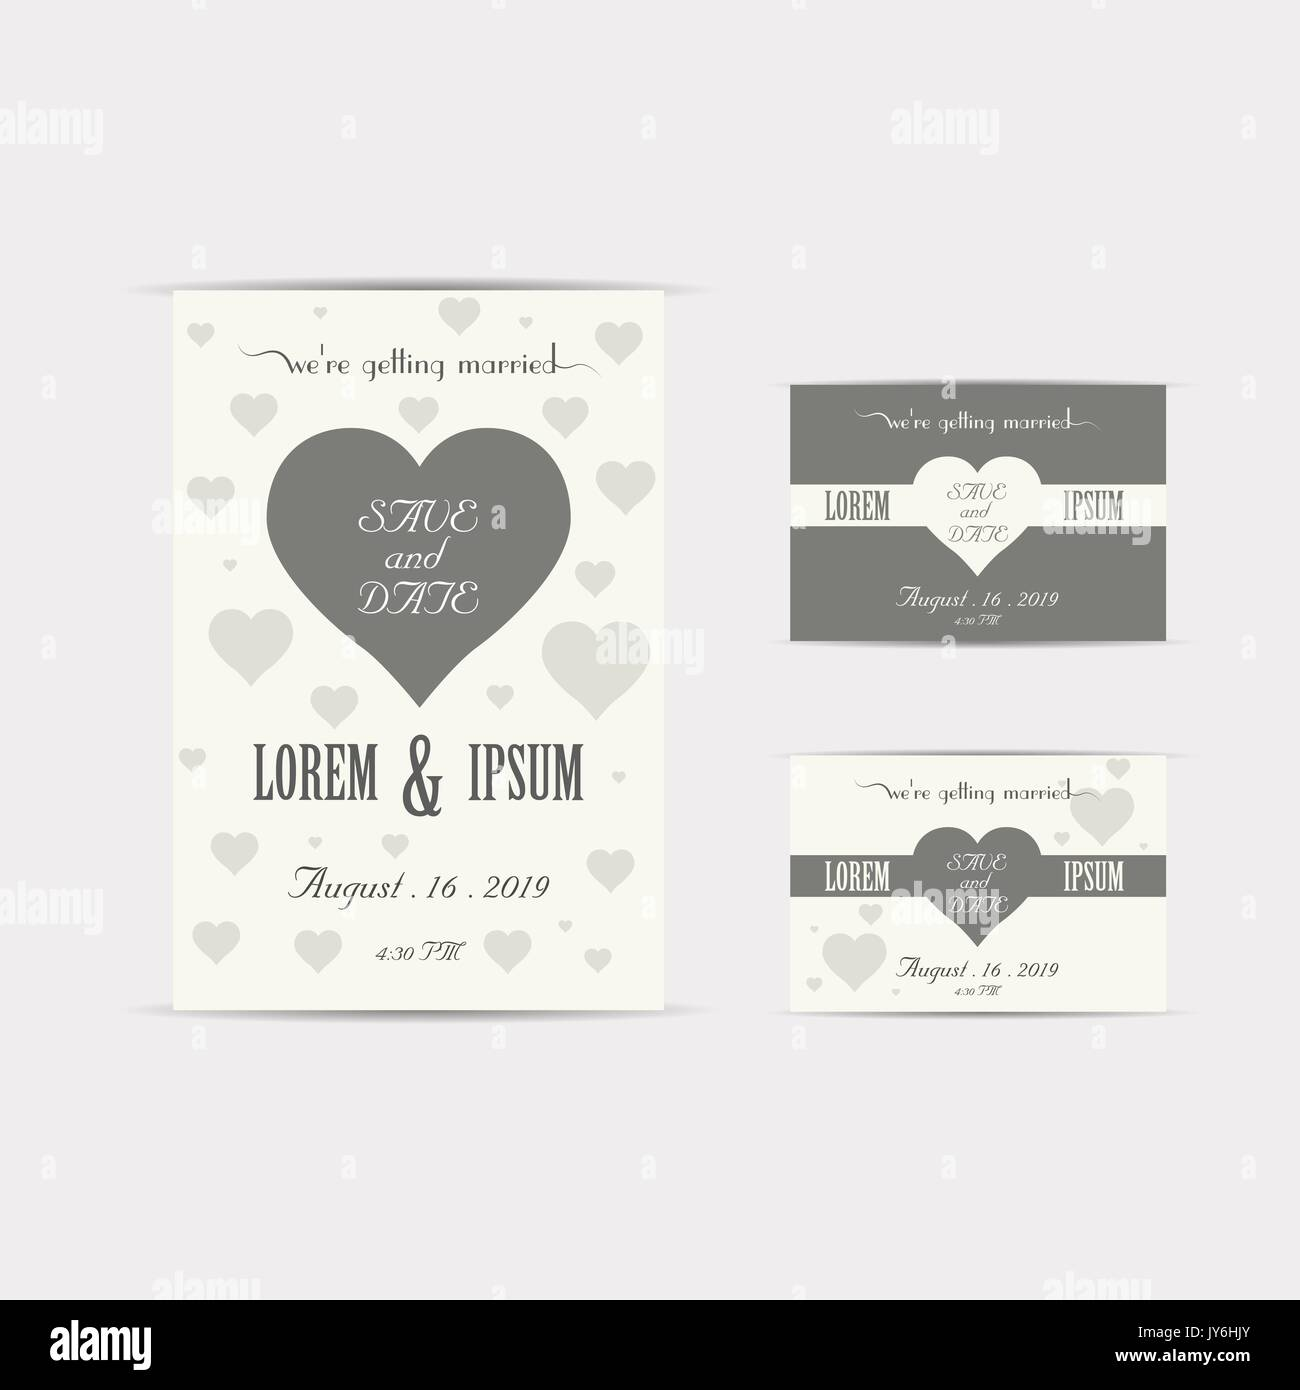 Wedding Invitation Card Vector Illustration Eps File